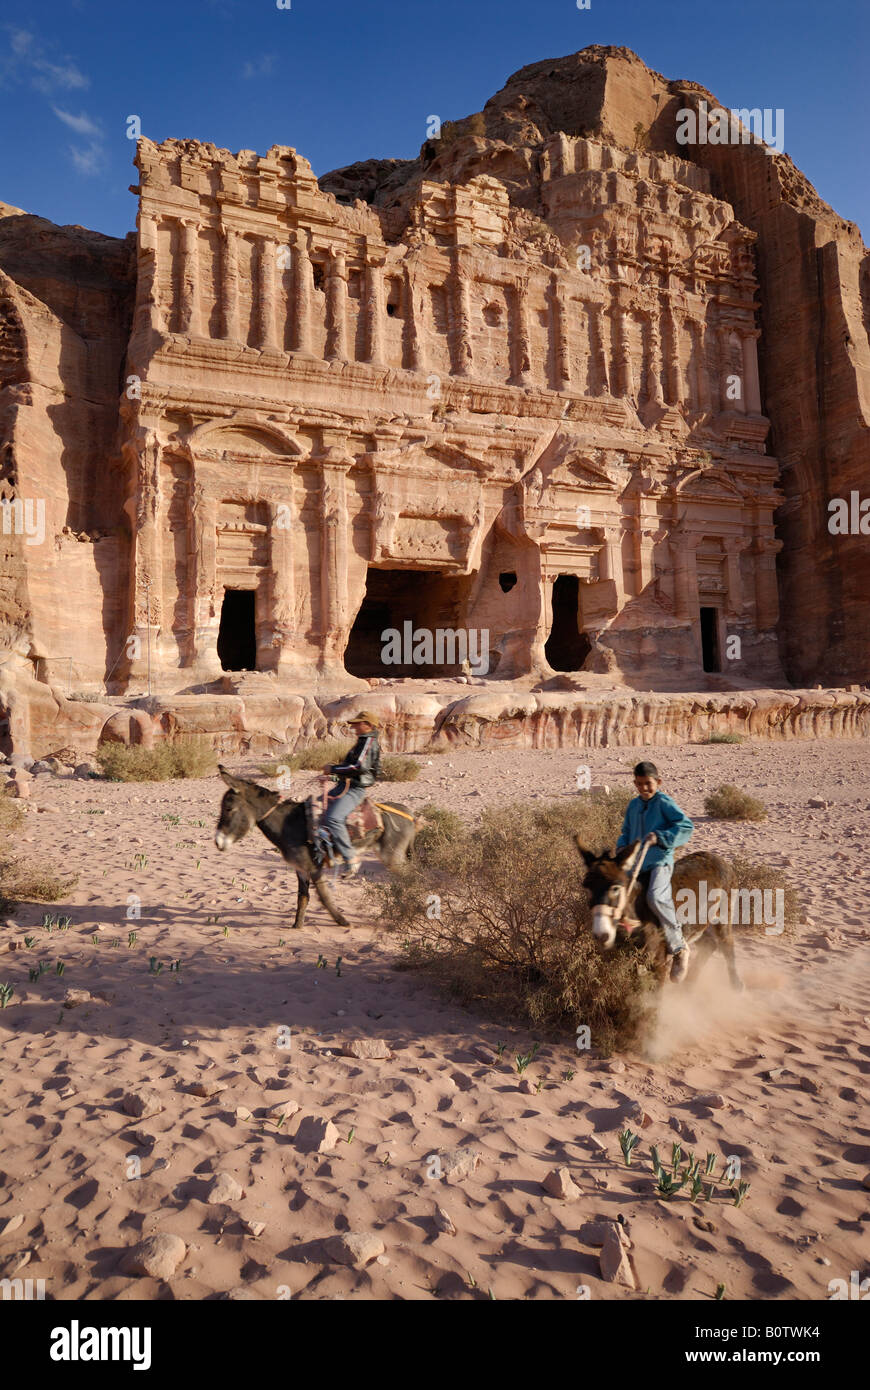 Palace Tomb The Royal Tombs carved out of the west face of al Khubtha mountain Nabataean ancient town Petra Jordan Stock Photo